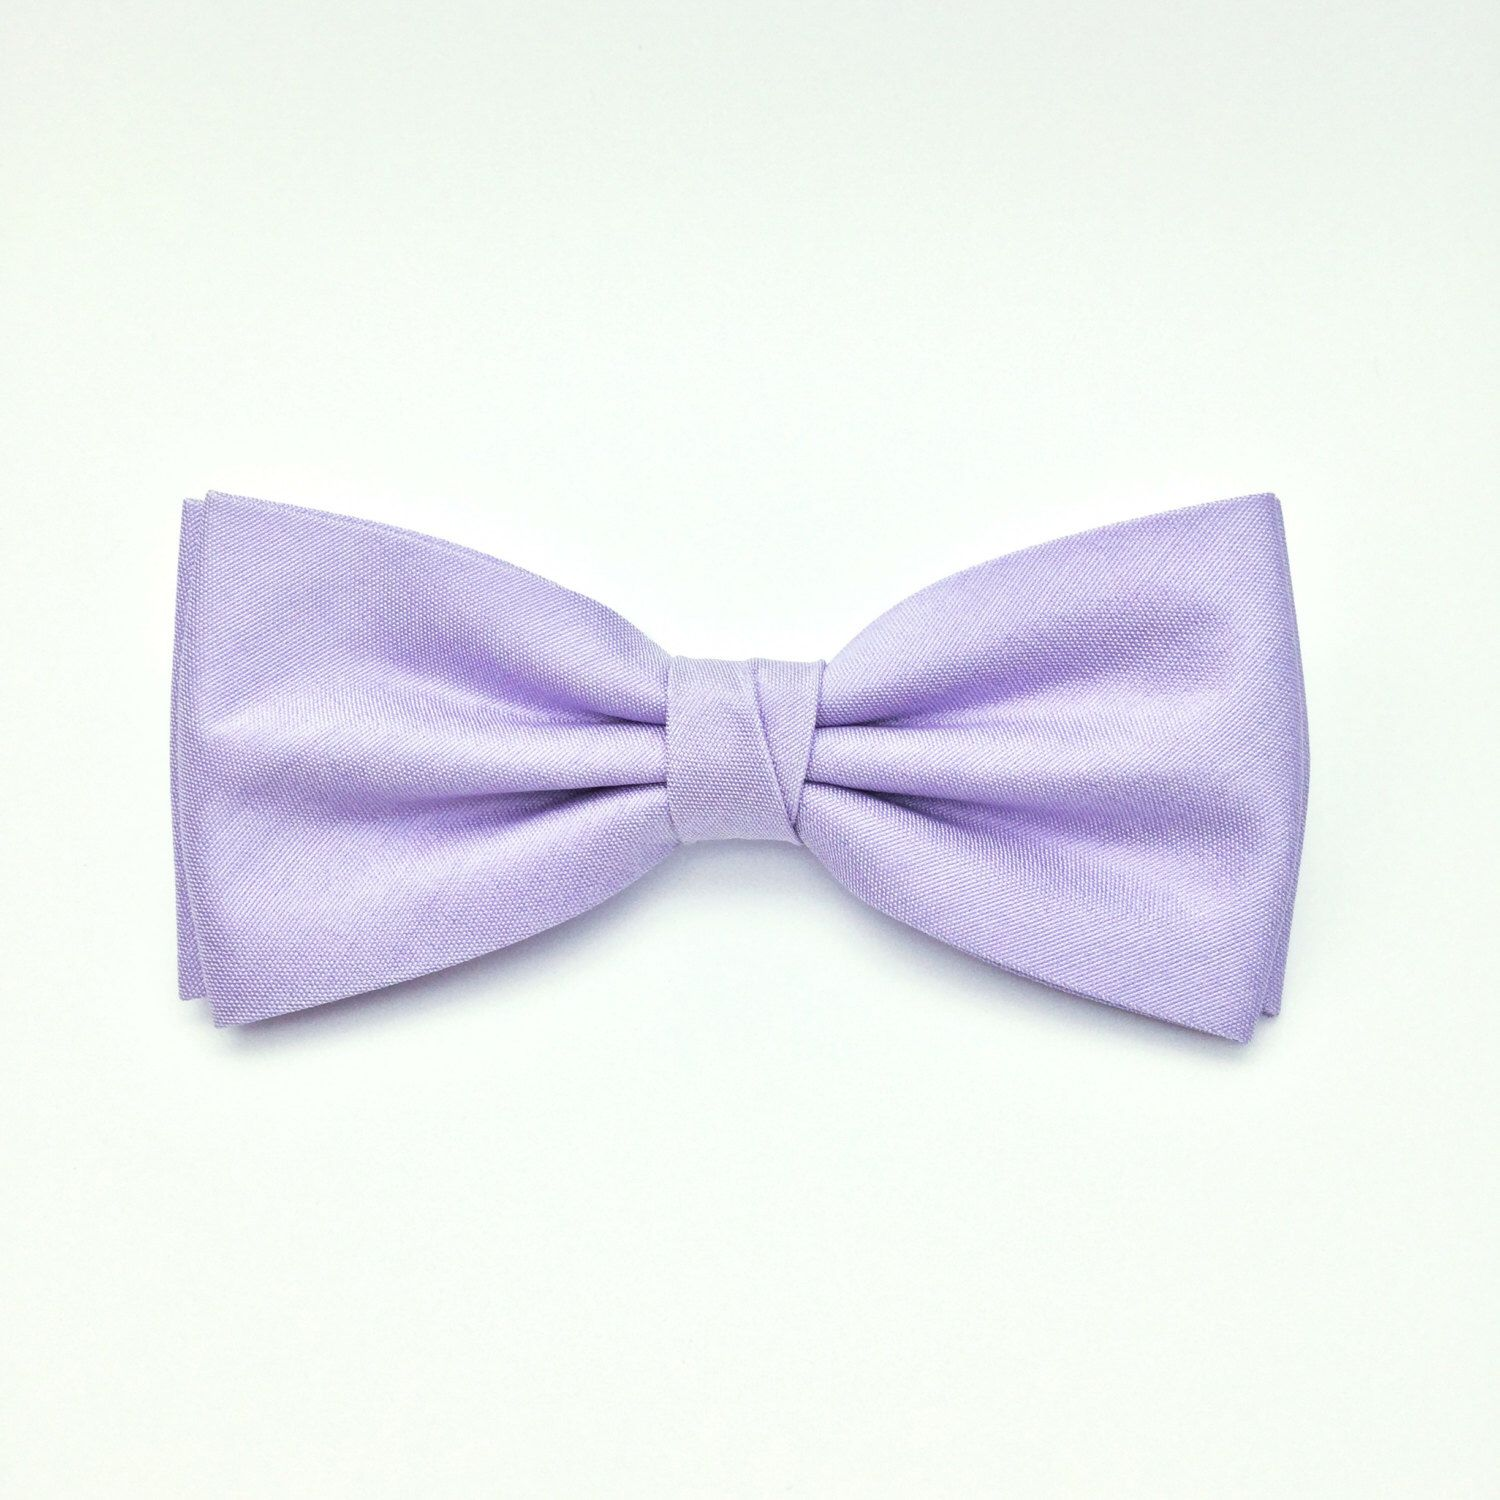 74648766a6f8 Periwinkle Bow tie, Purple Lilac Bow Tie, Solid Bow tie, Lilac Wedding,  Silk Bow tie, Gift for Him, Bow tie for Groom, Mens Bow tie